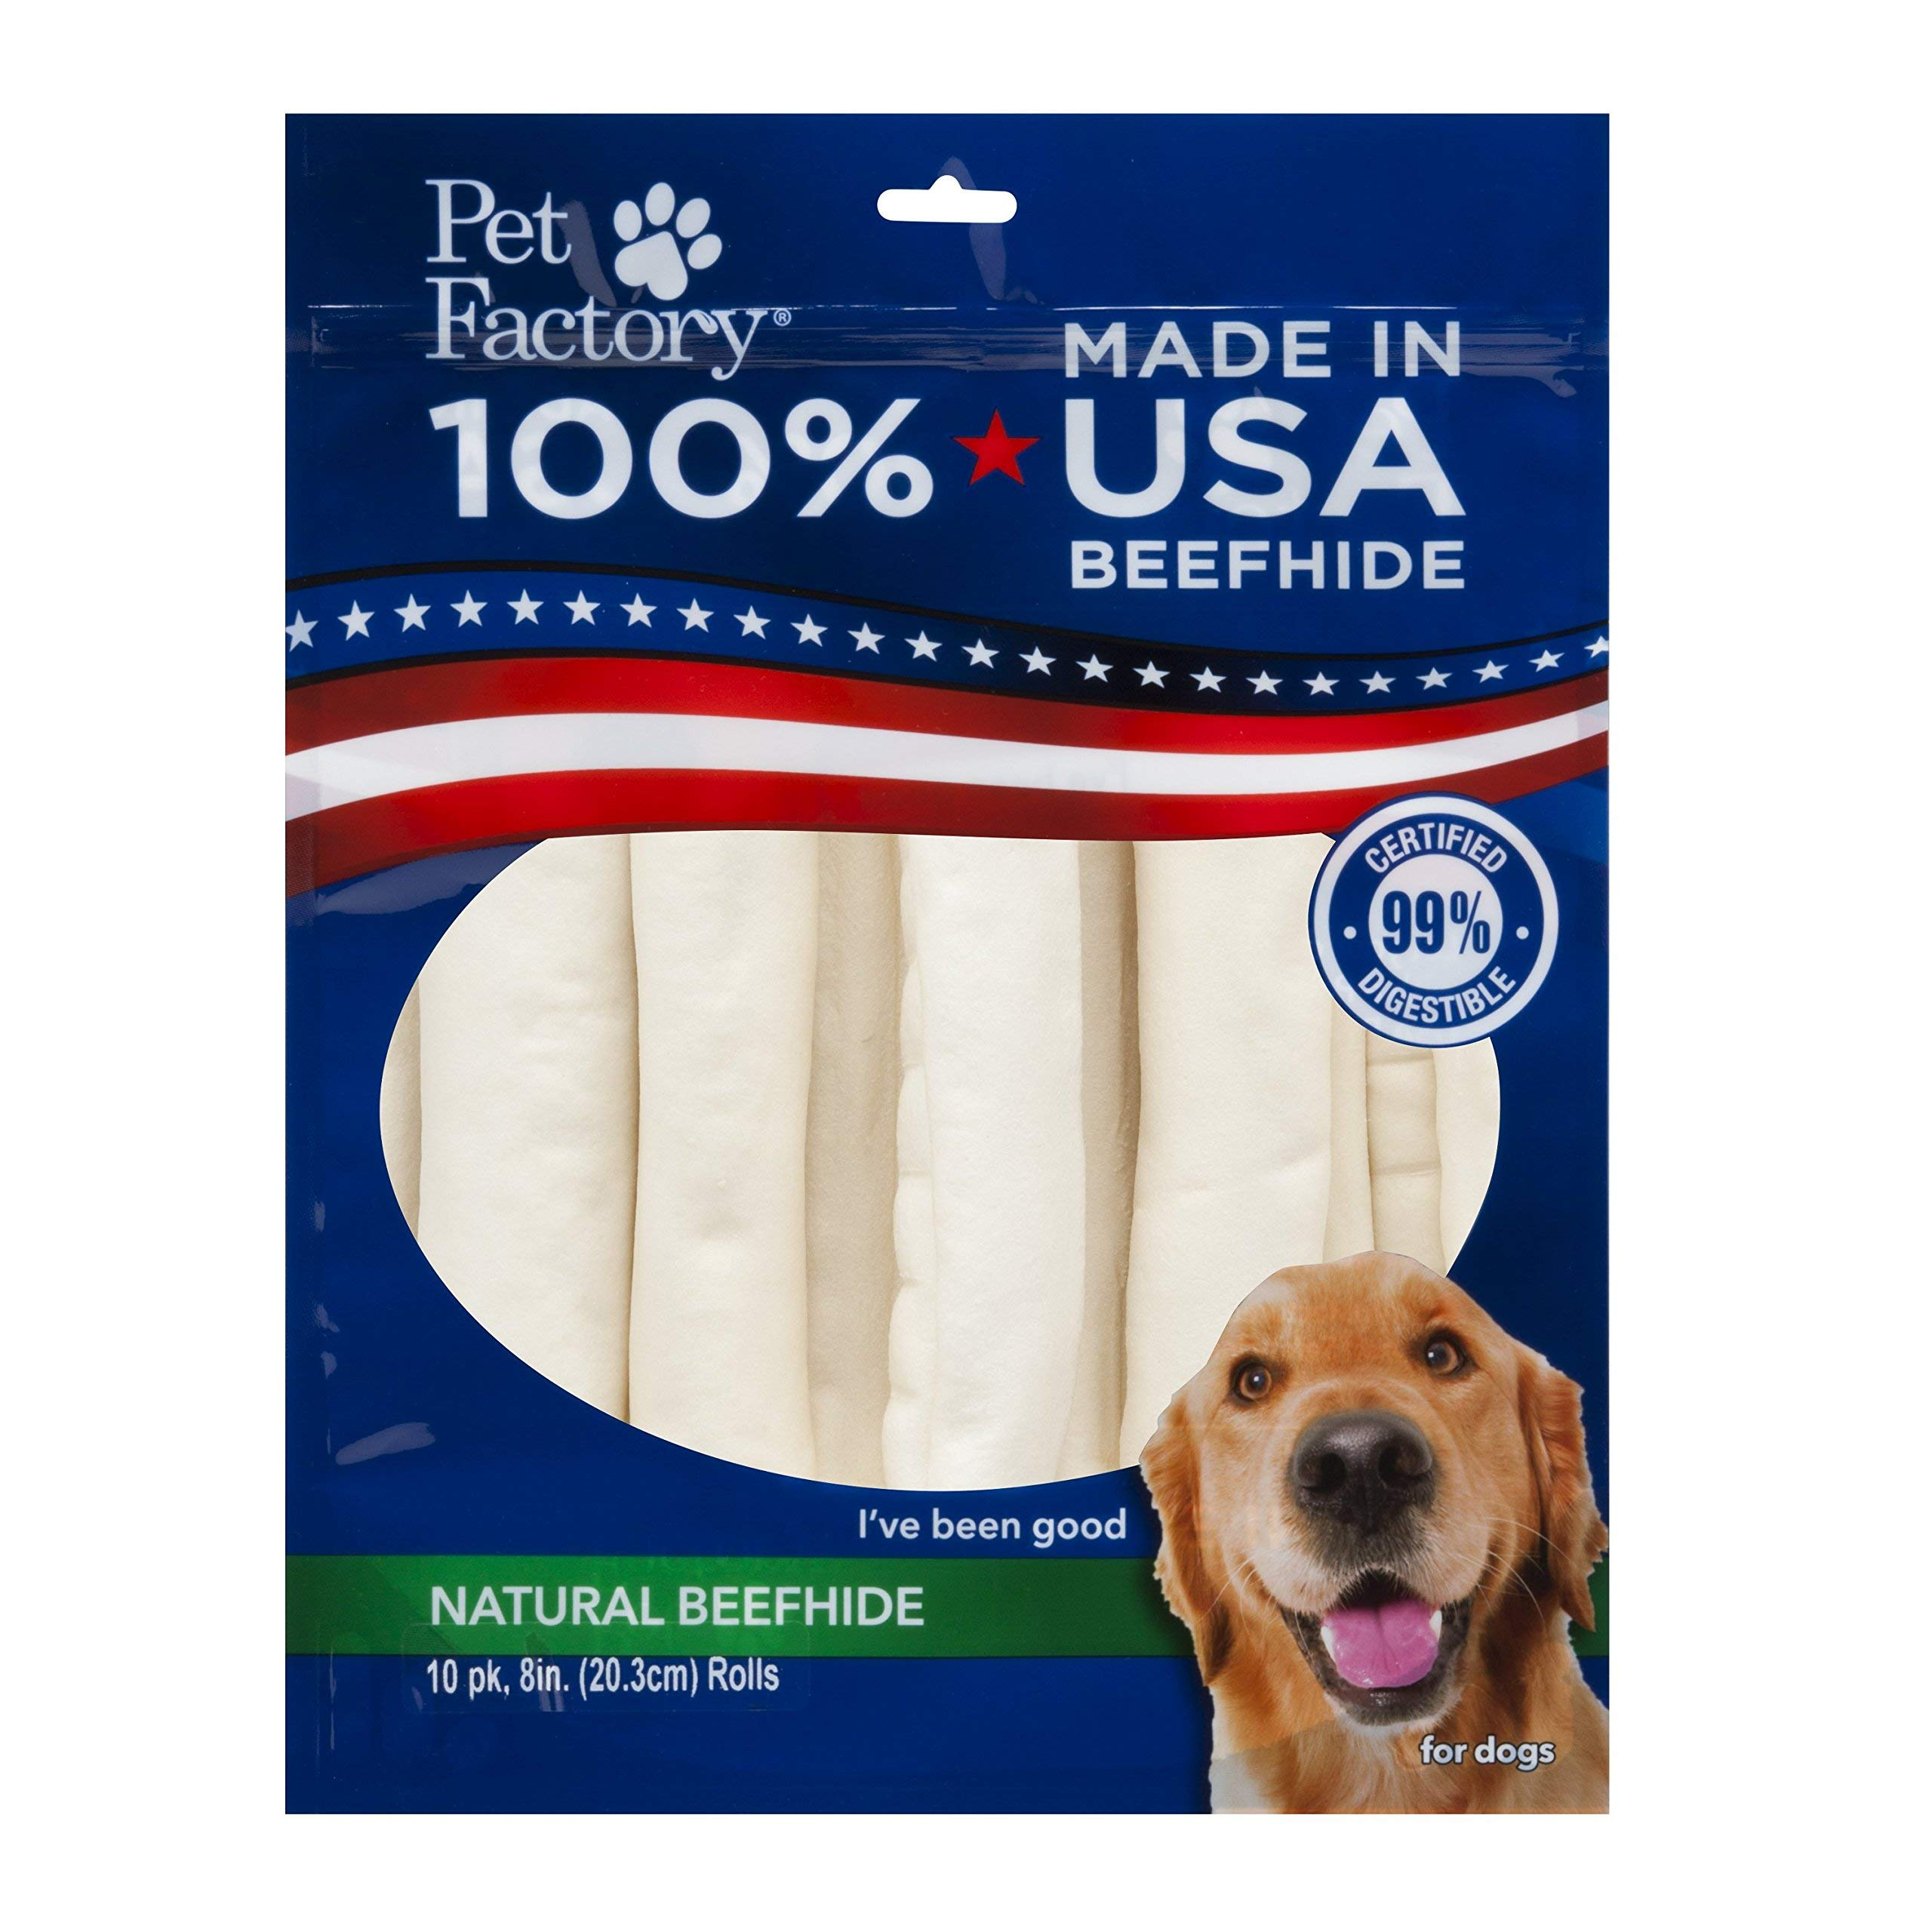 PET FACTORY USA Value-Pack Beefhide 8-Inch Retriever Rolls Chews for Dogs, 10-Pack (Package may Vary)) by Pet Factory